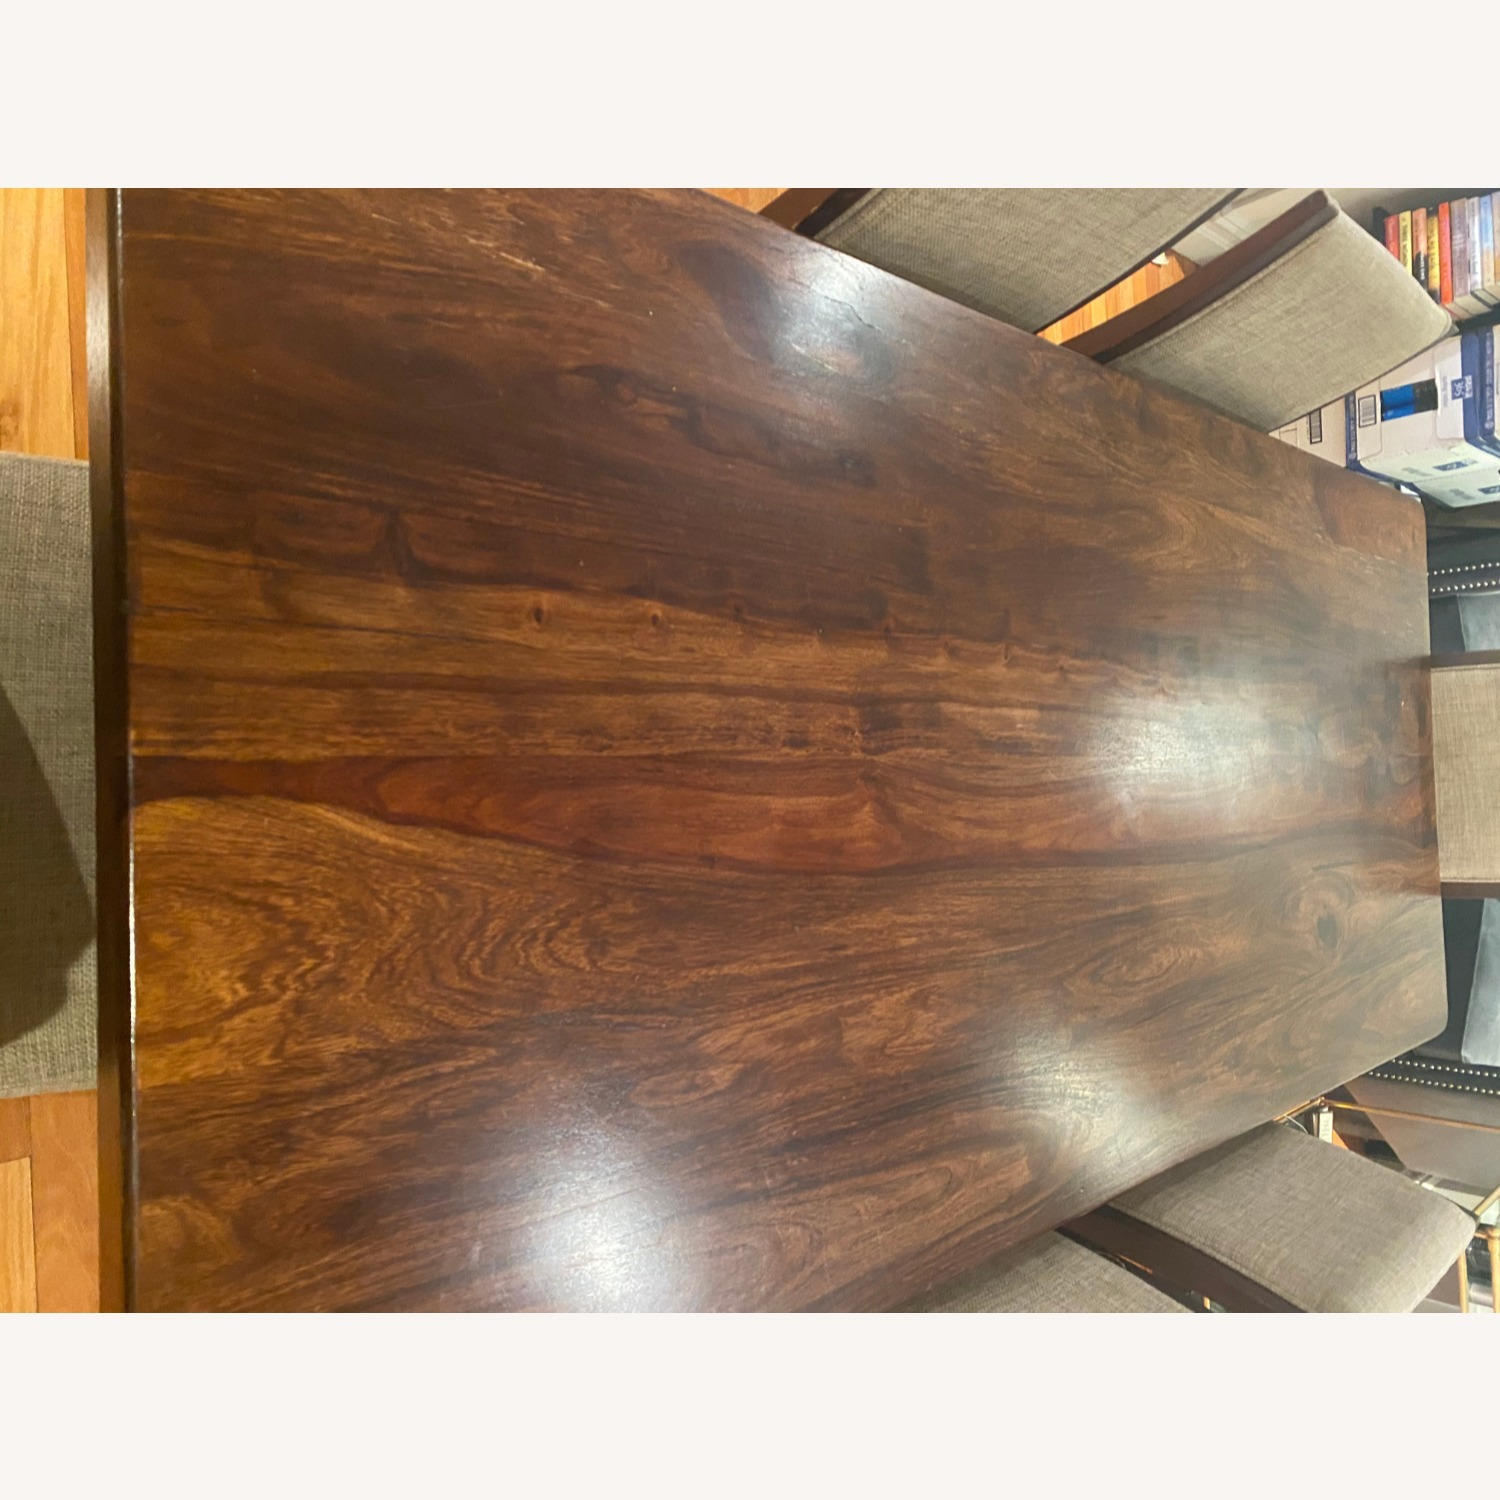 Pier 1 Imports Dark Wood Dining Table, Seats 6 - image-7